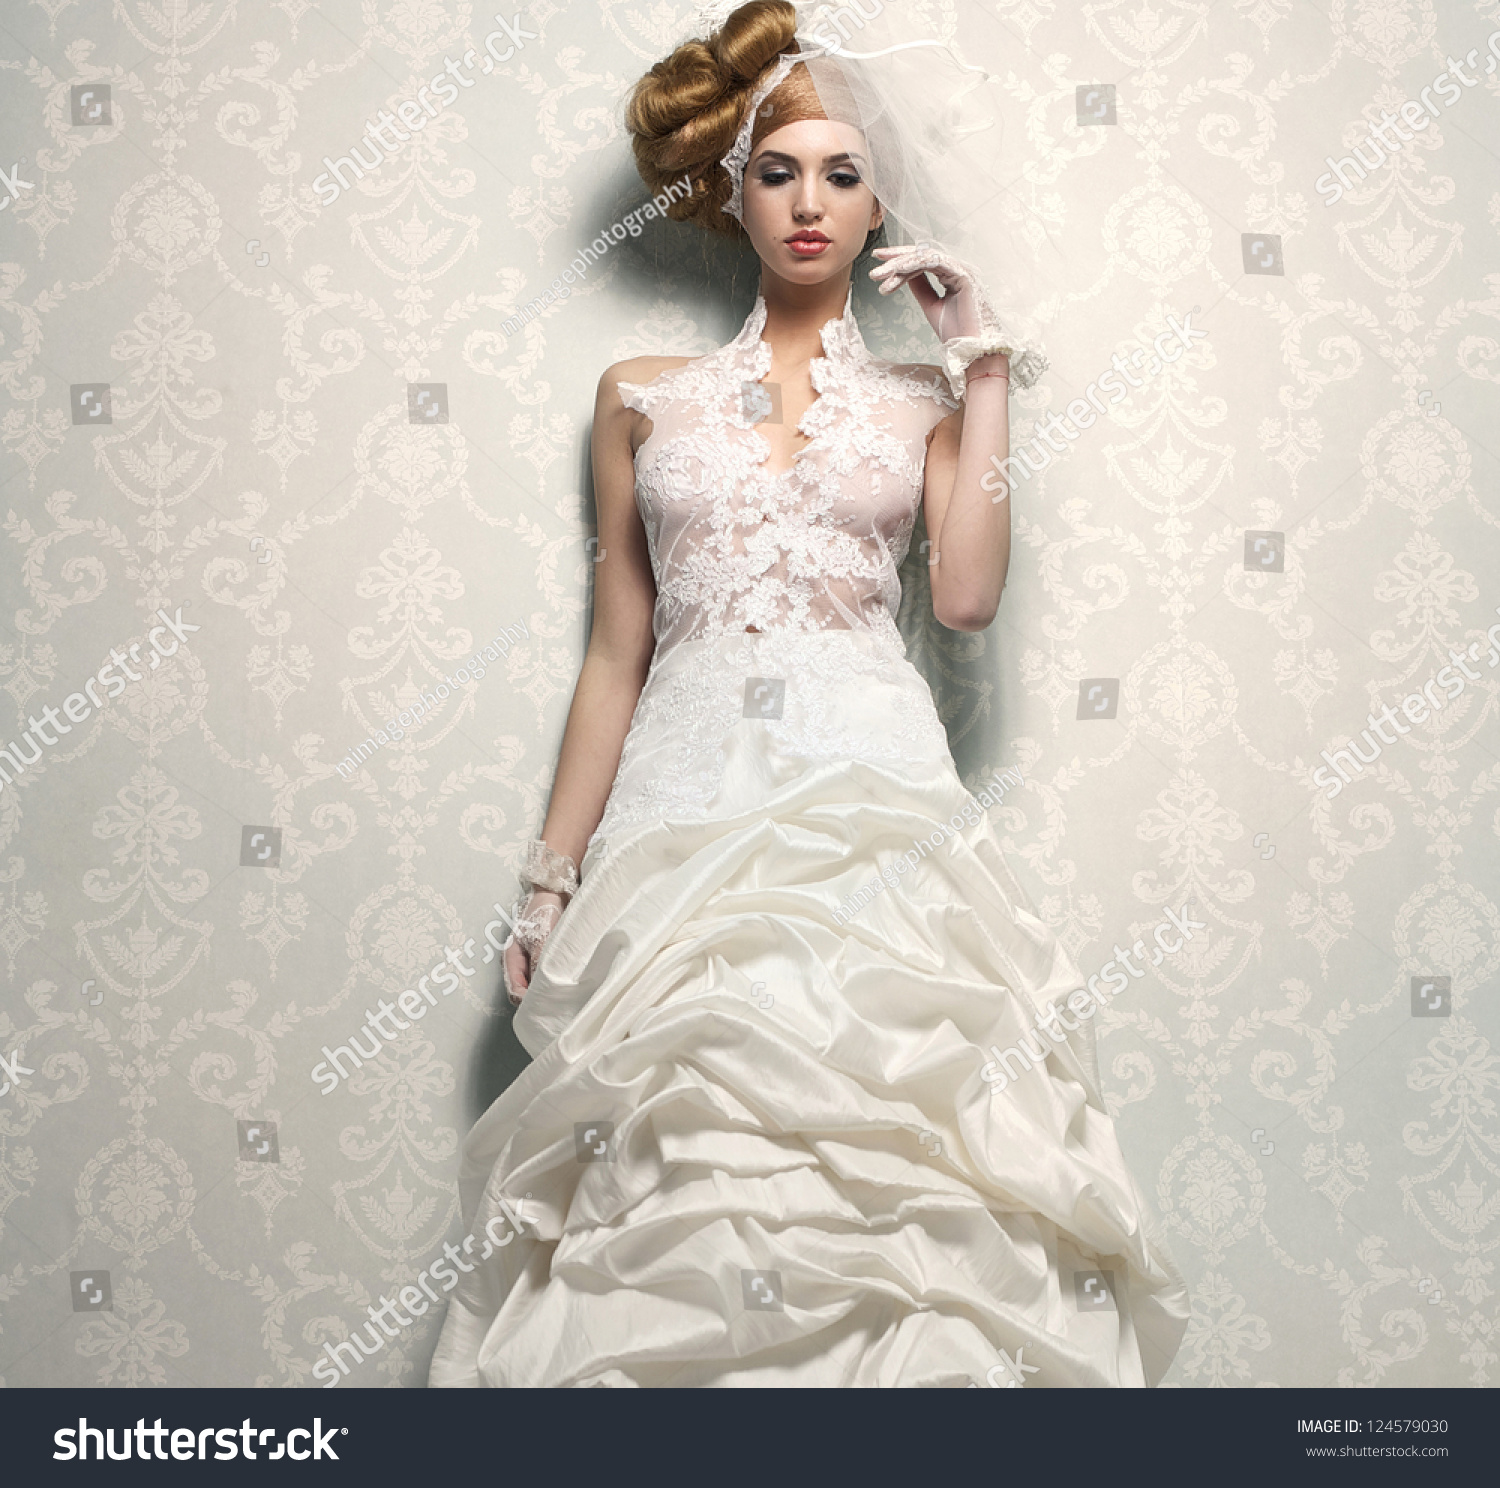 Classy And Glamorous Photo: Beautiful Bride In Elegant White Wedding Dress With Hand